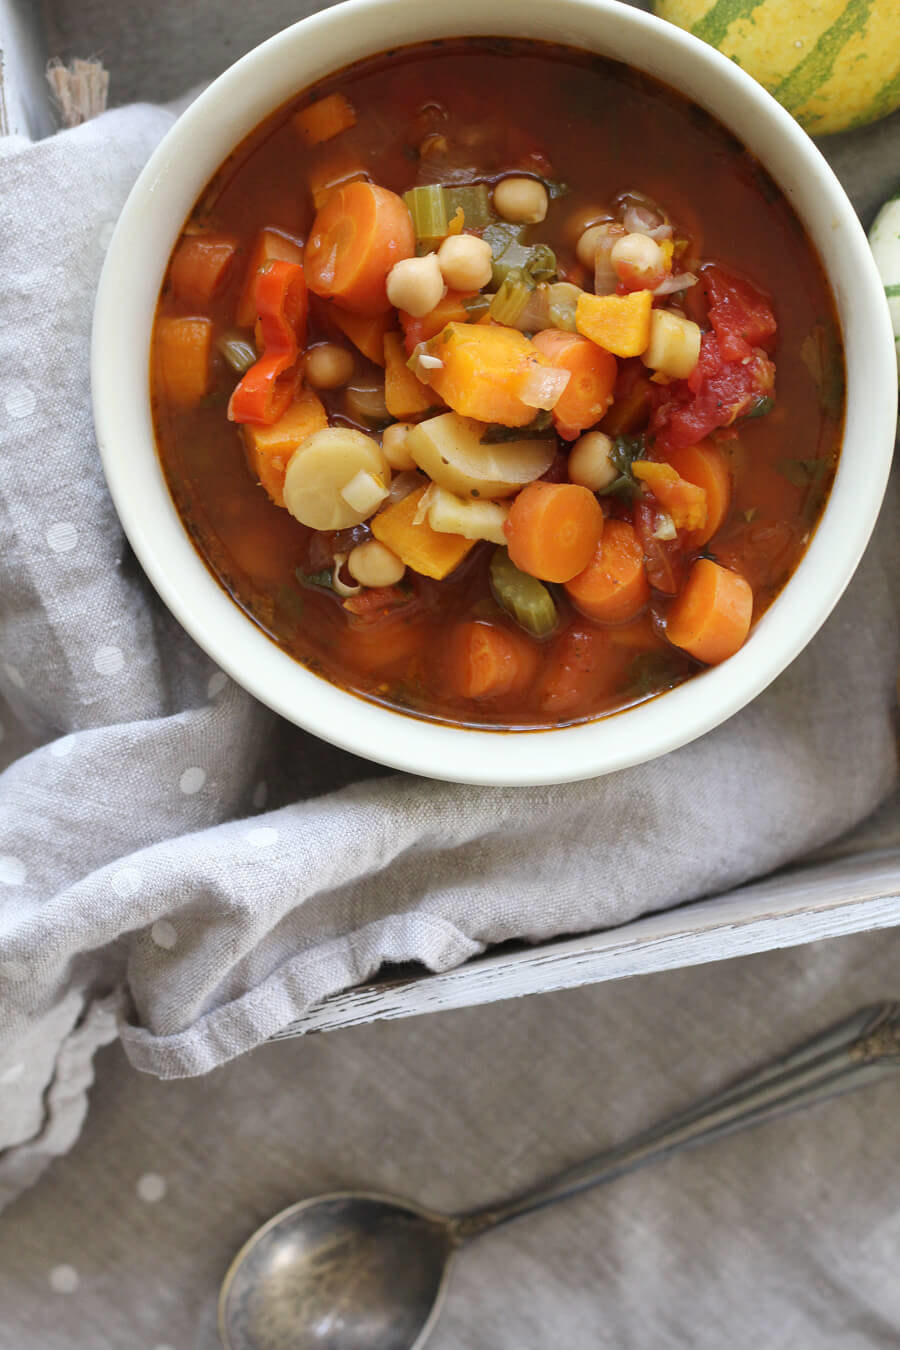 15 Meatless Soups That'll Nourish And Comfort You When It's Cold Out